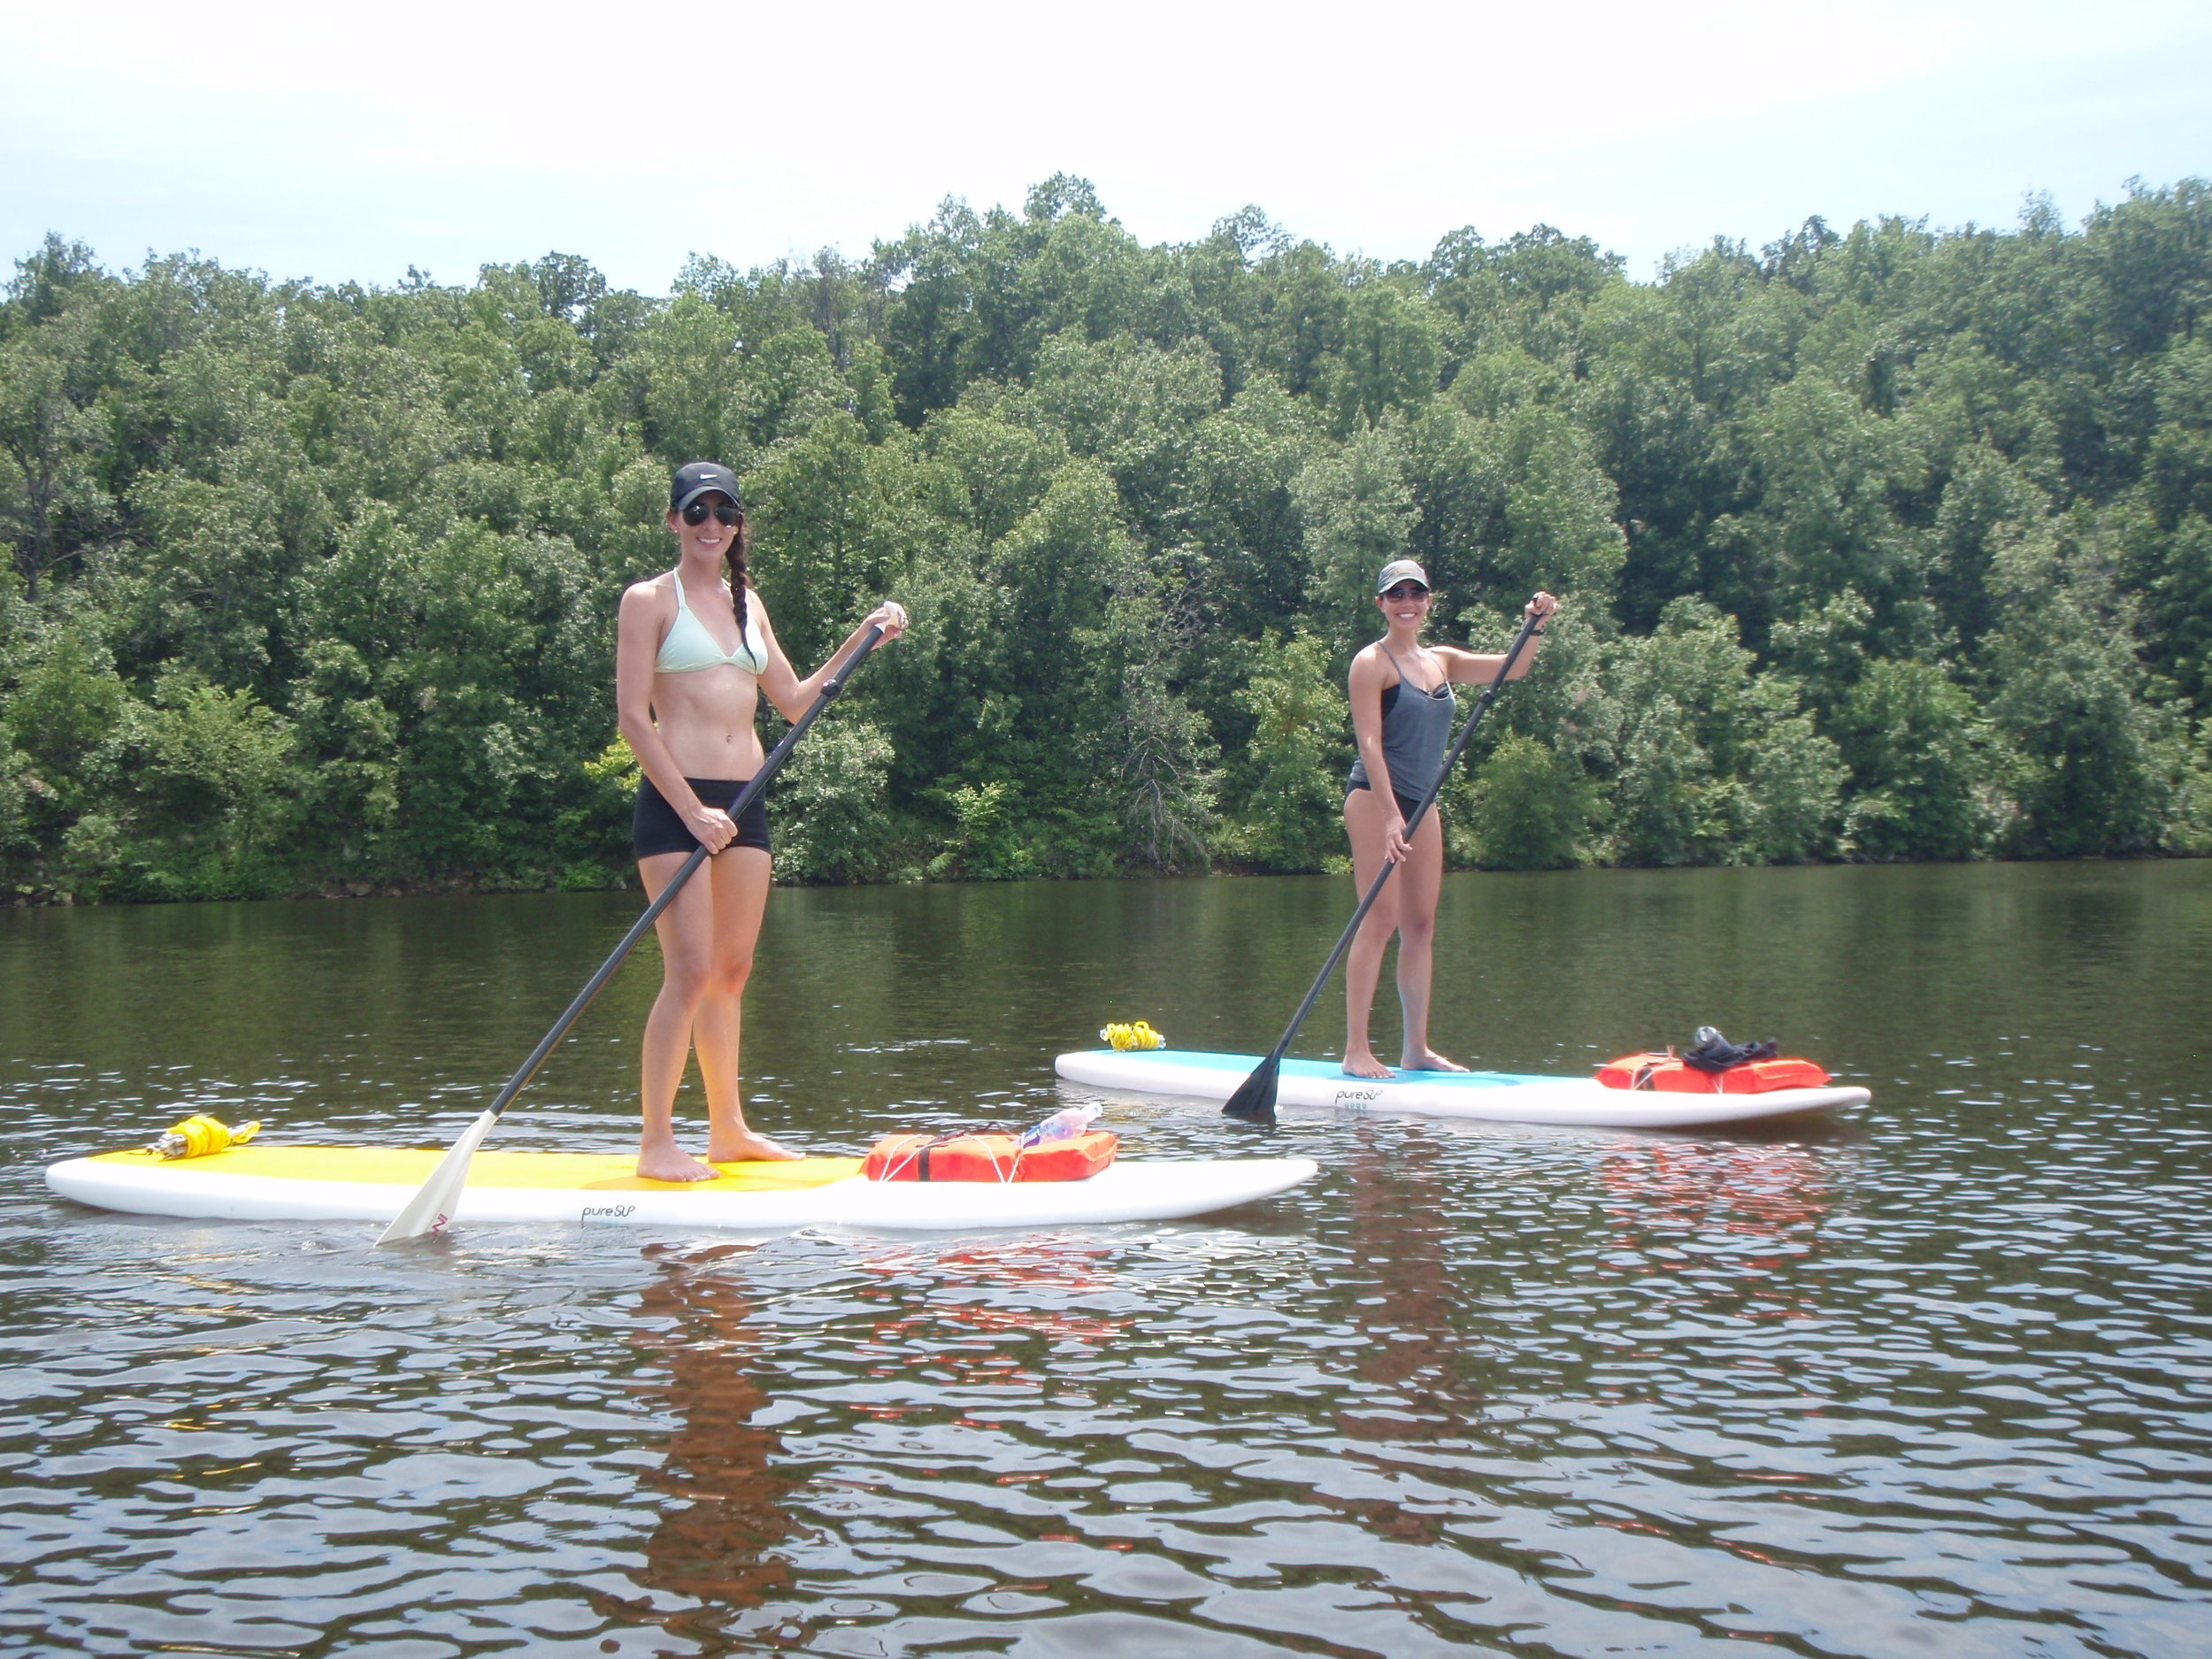 SUP Basics & Tour - Learn the basics of Standup Paddleboarding & take a tour of beautiful Shell Lake. Great for all paddlers,beginners and pros, develop and improve your paddling skills.